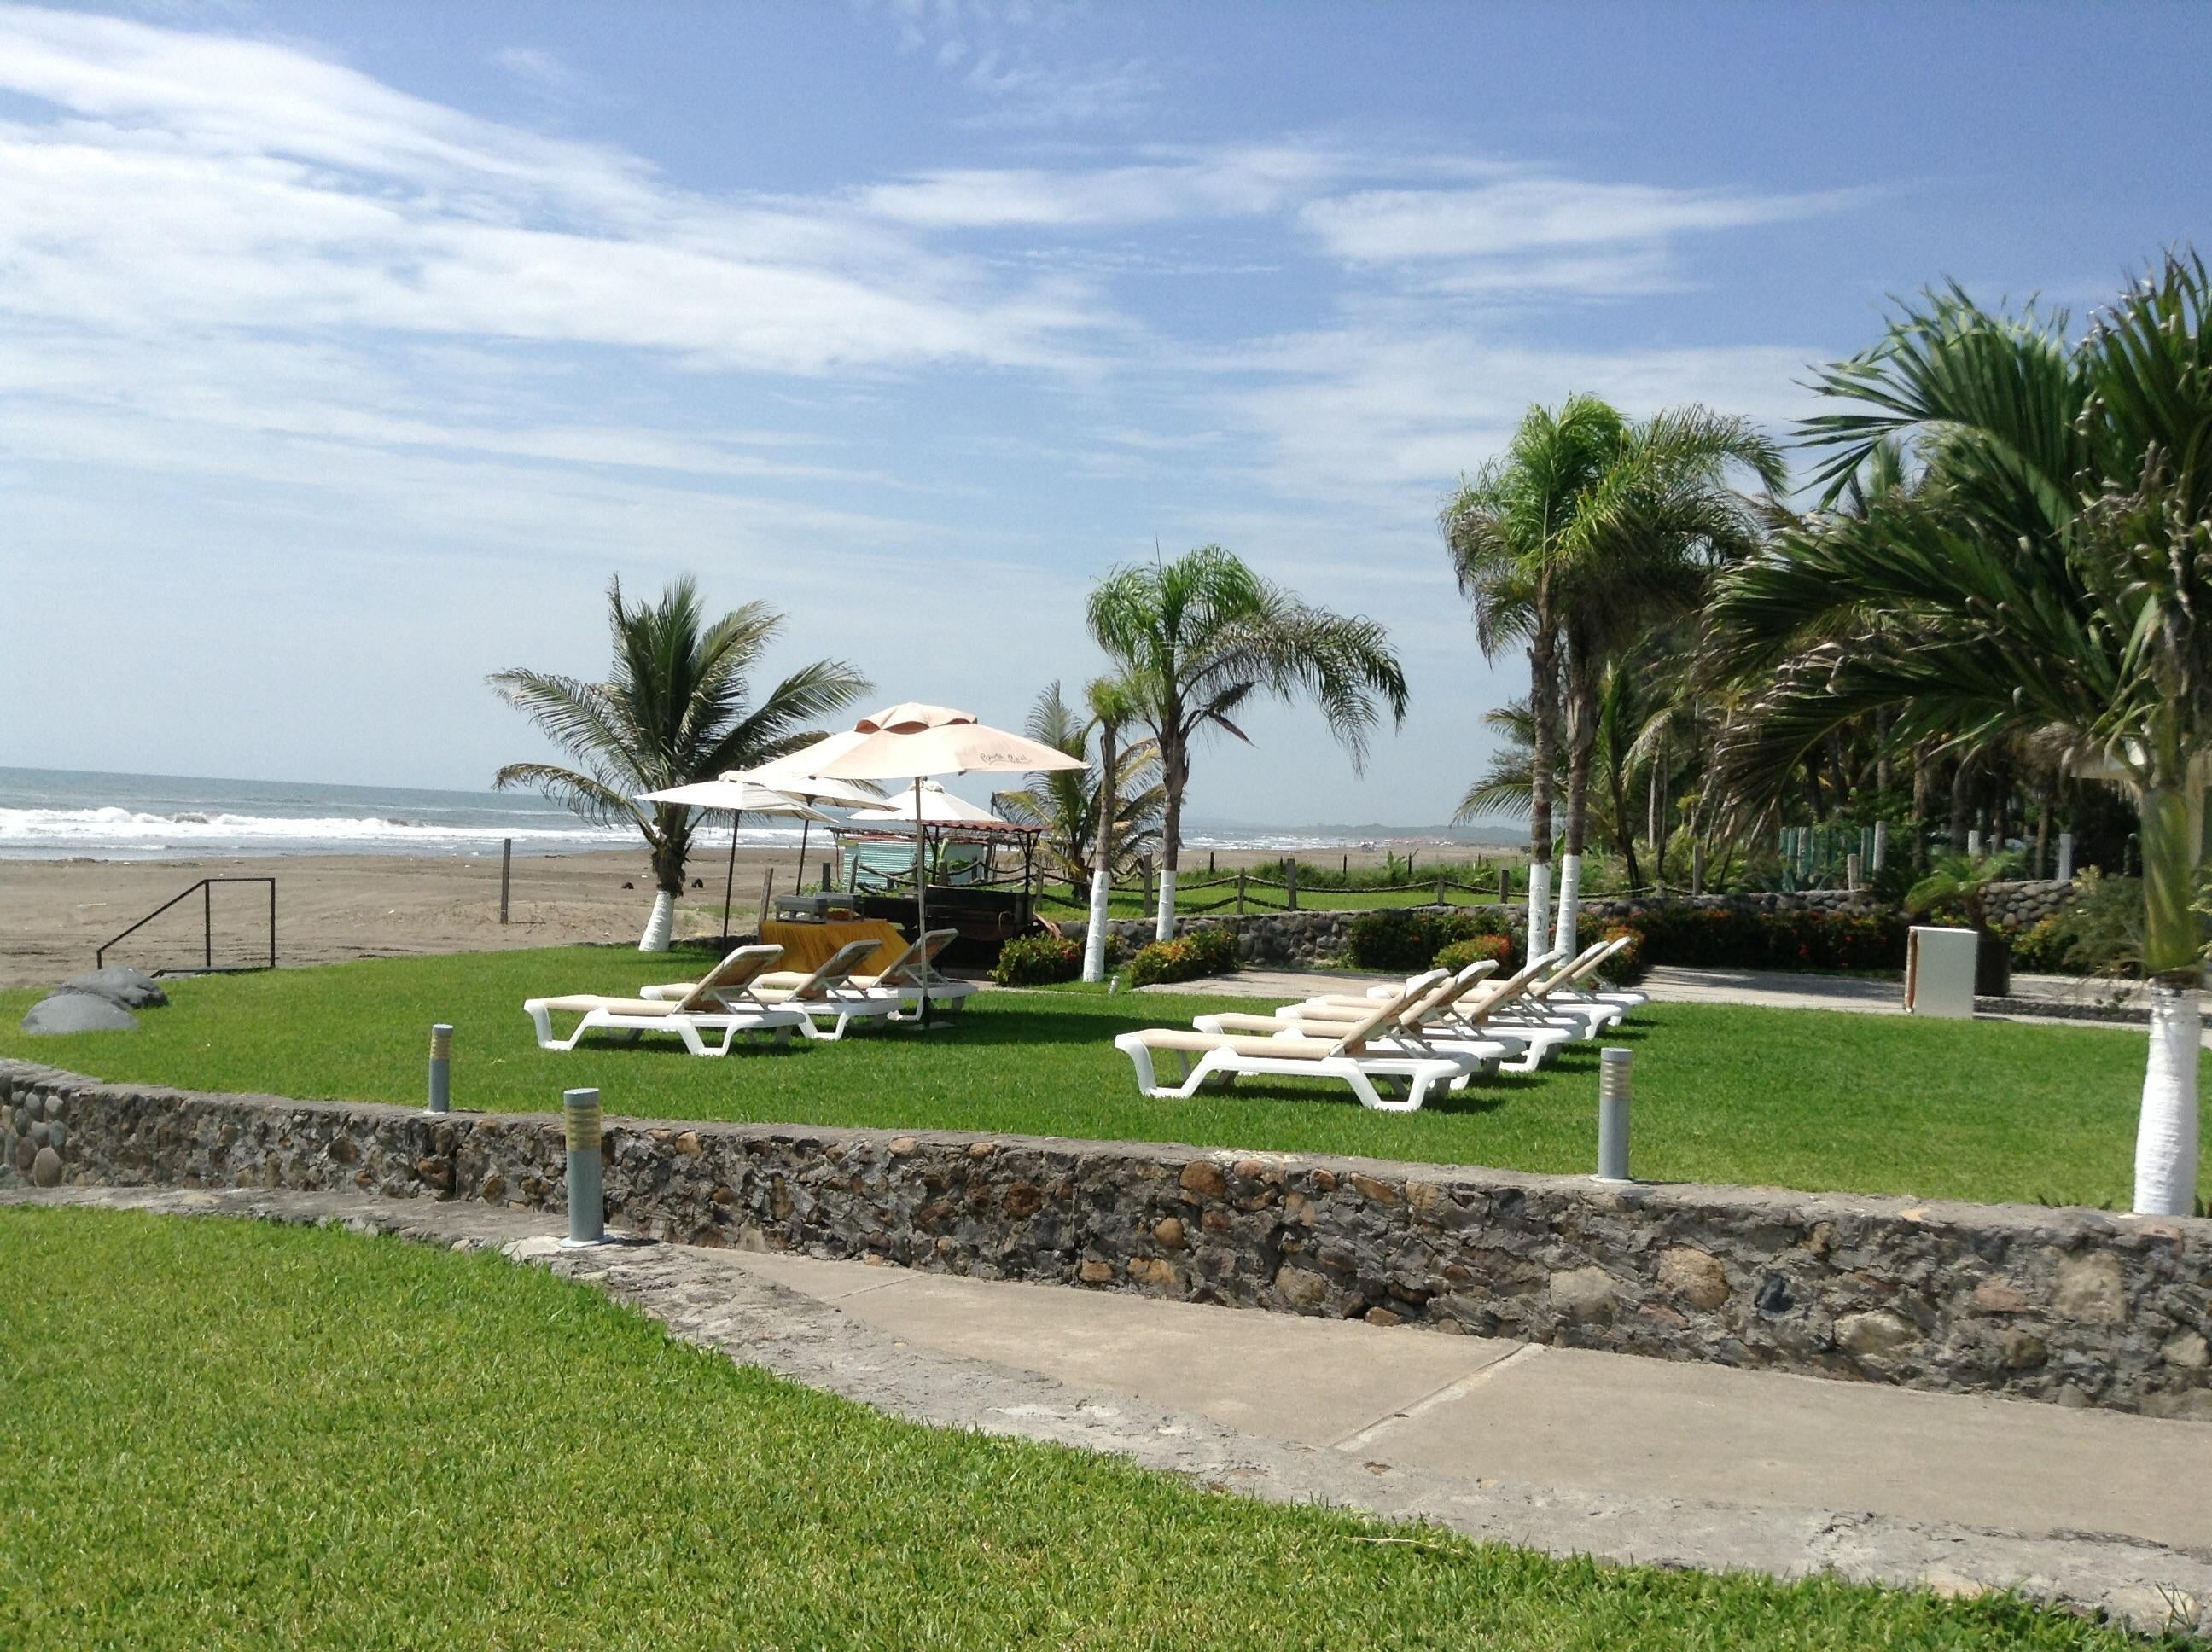 Resort en Playa de Chachalacas